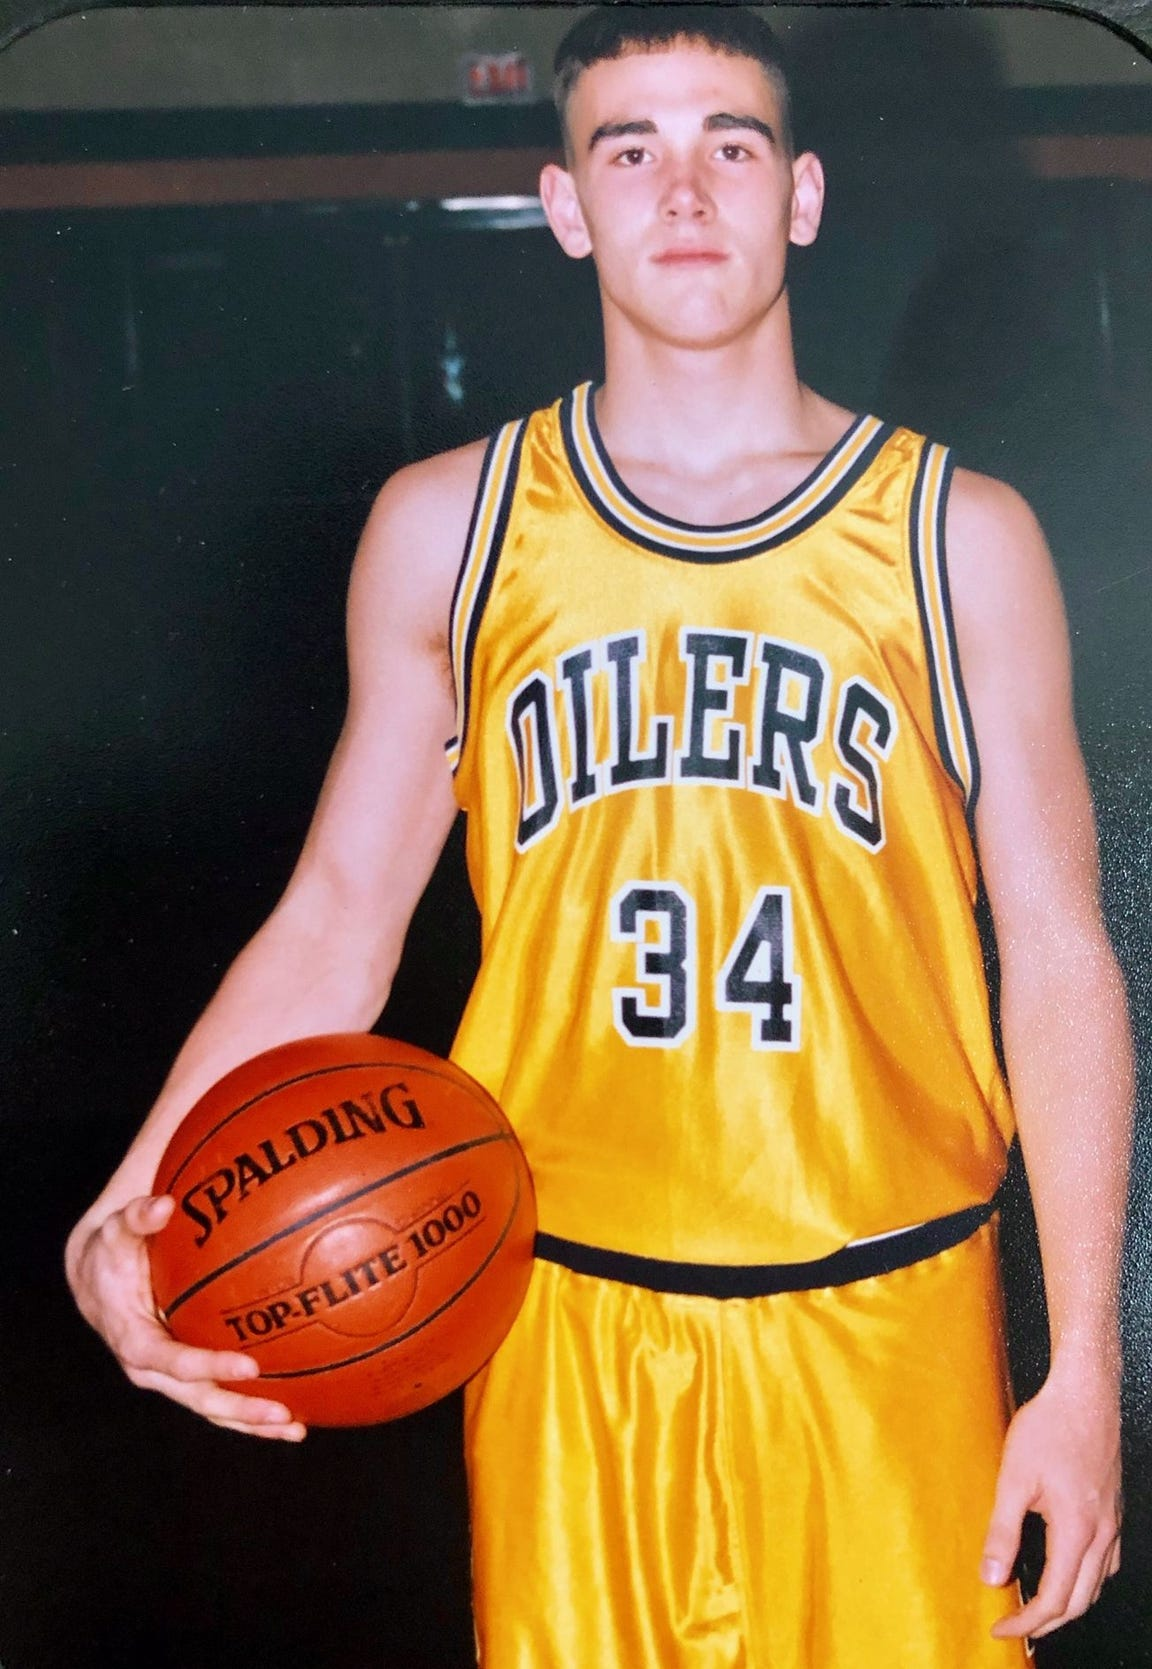 Matt LaFleur played basketball at Mount Pleasant High School.